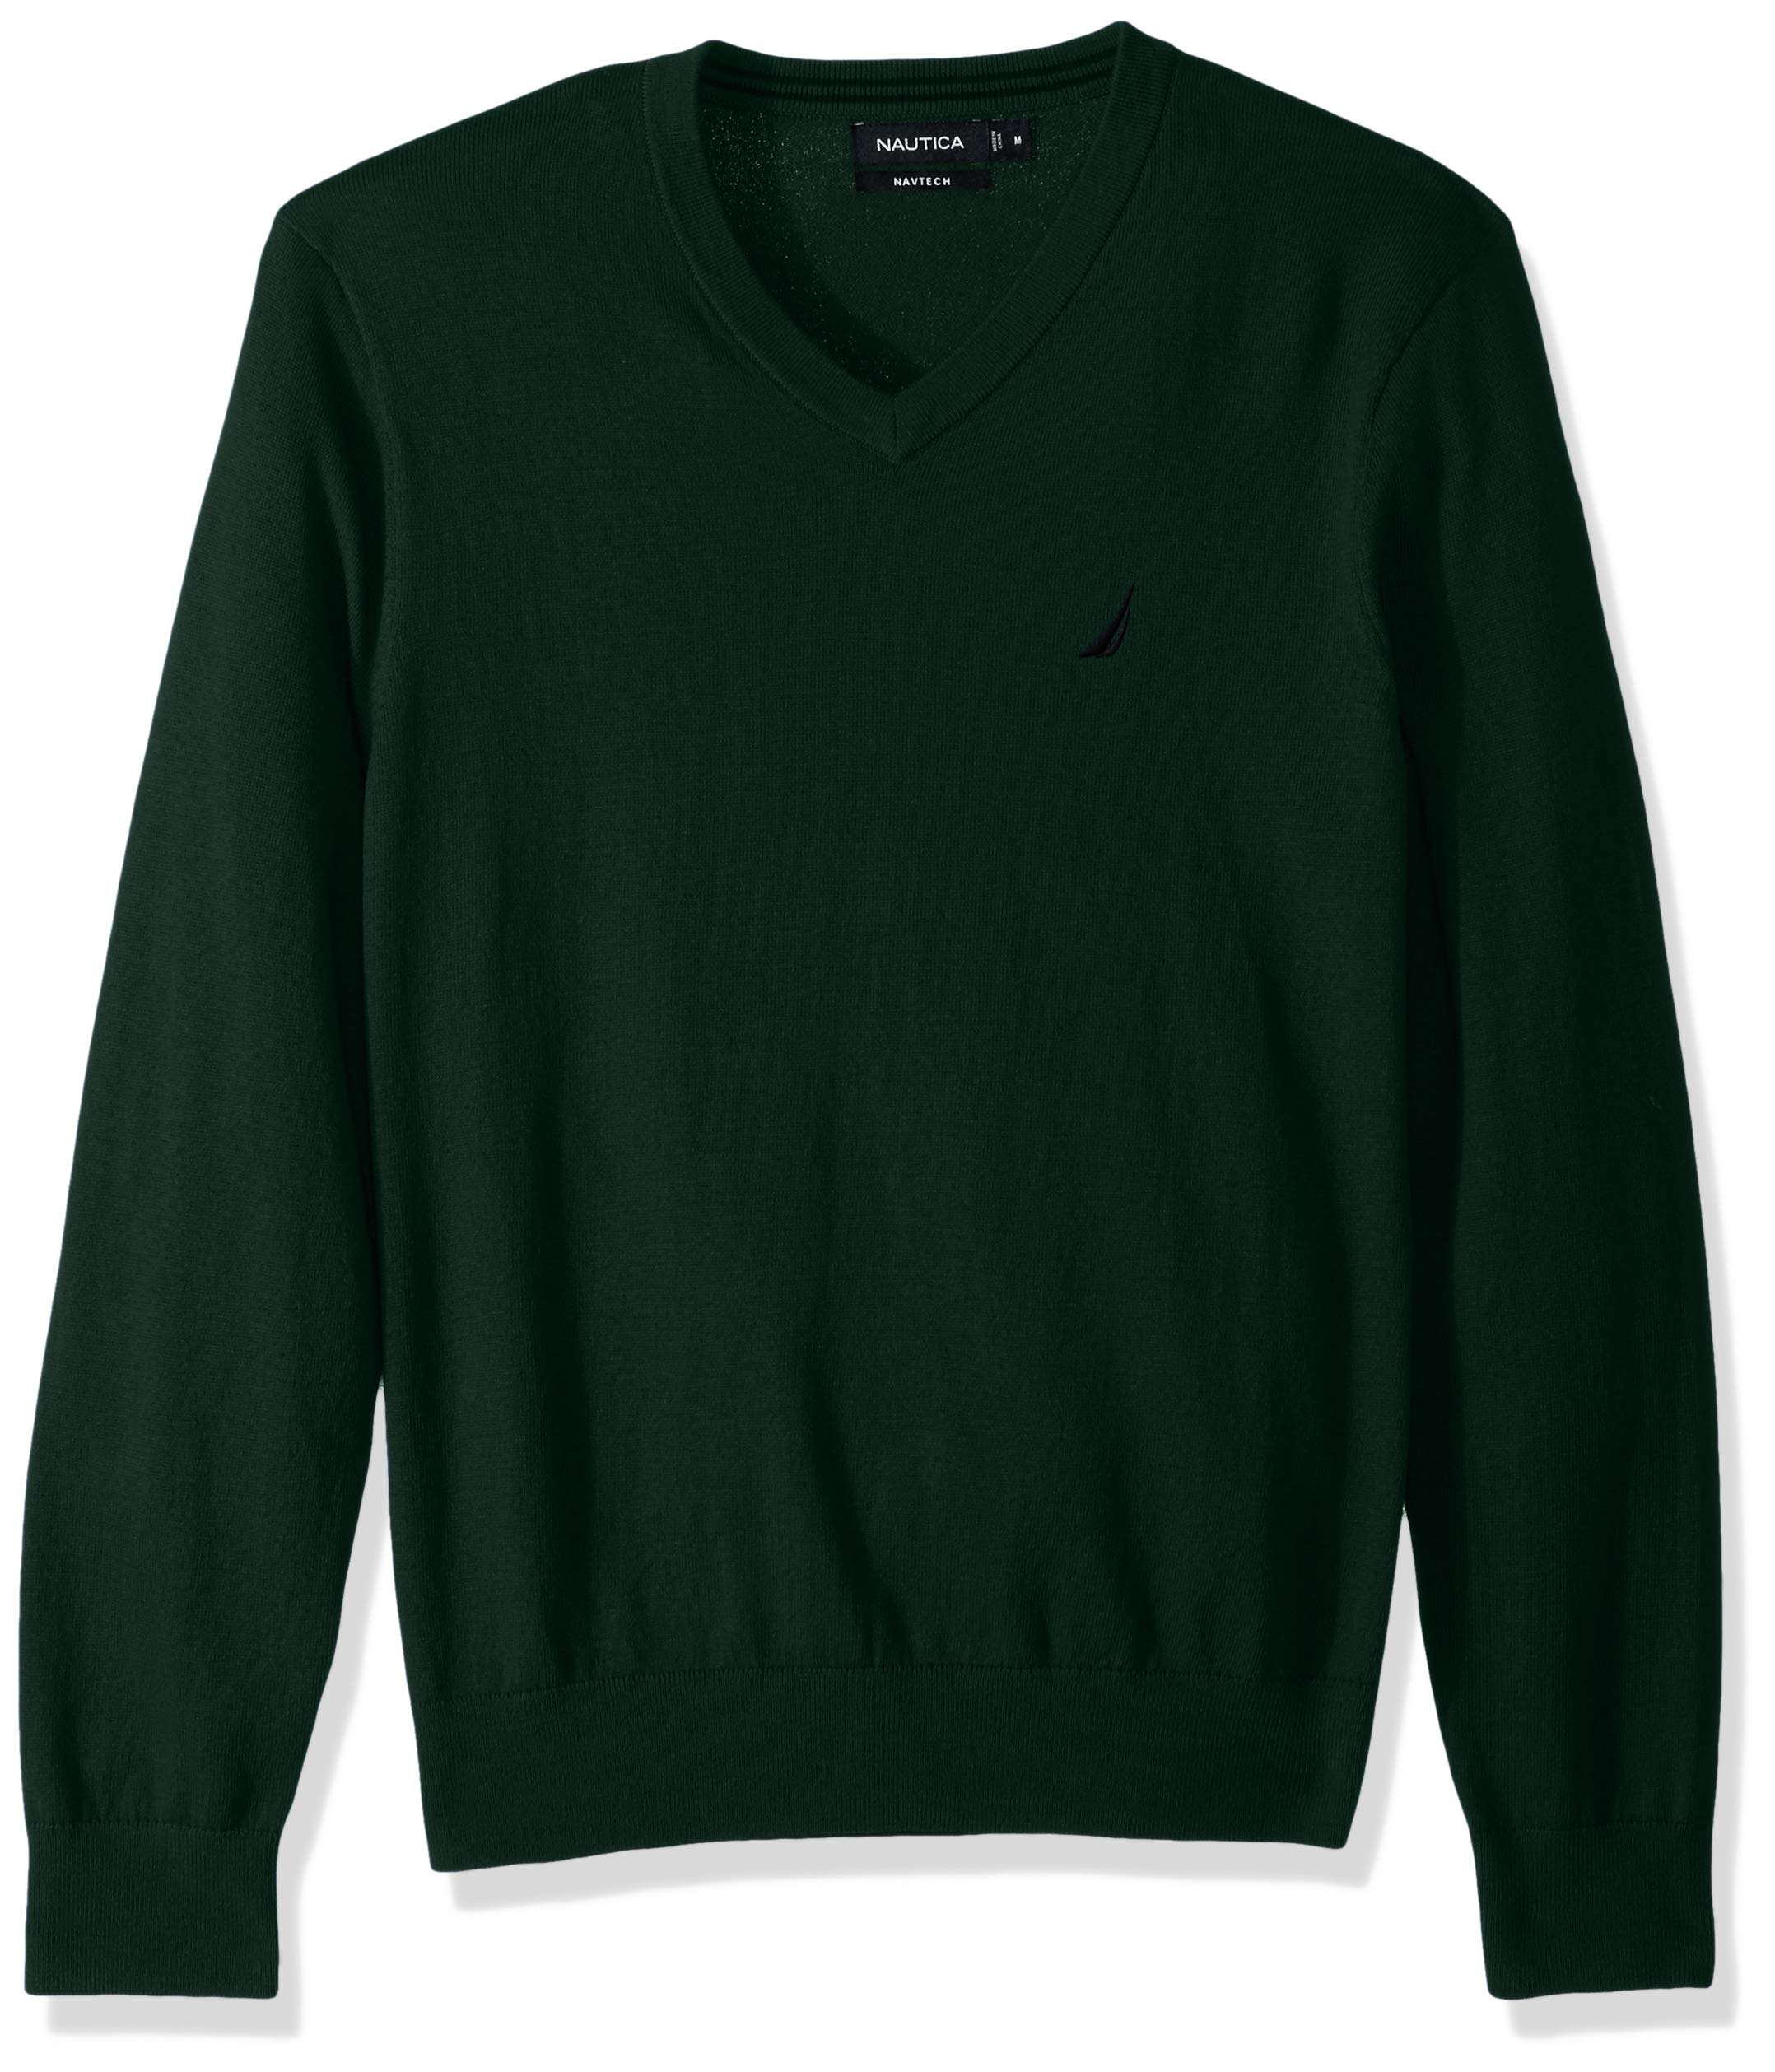 Nautica Men's Long Sleeve Solid Classic V-Neck Sweater, Tidal Green, X-Large